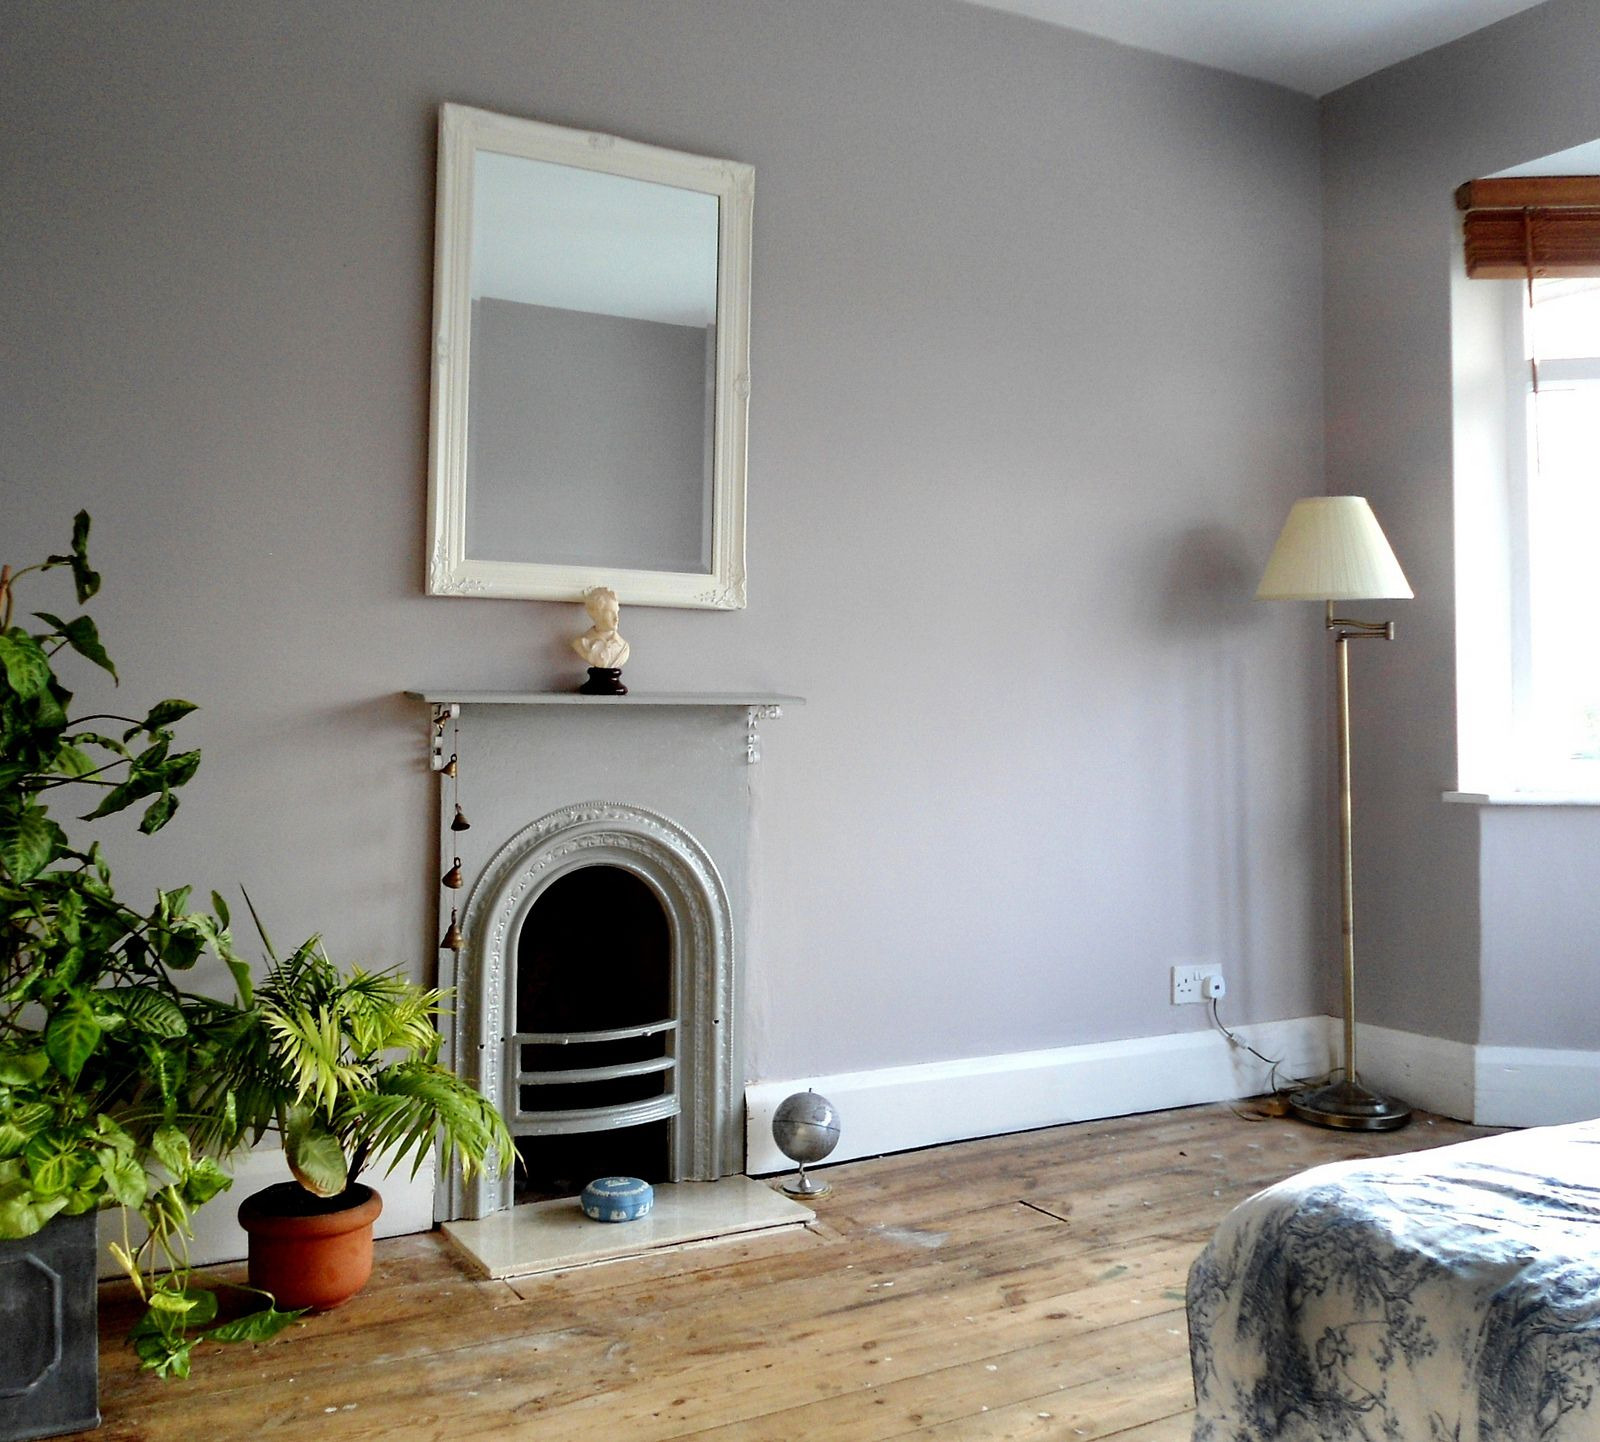 Bedroom Wall Paint Color: 'Chalk Blush' Dulux Paint In 2019